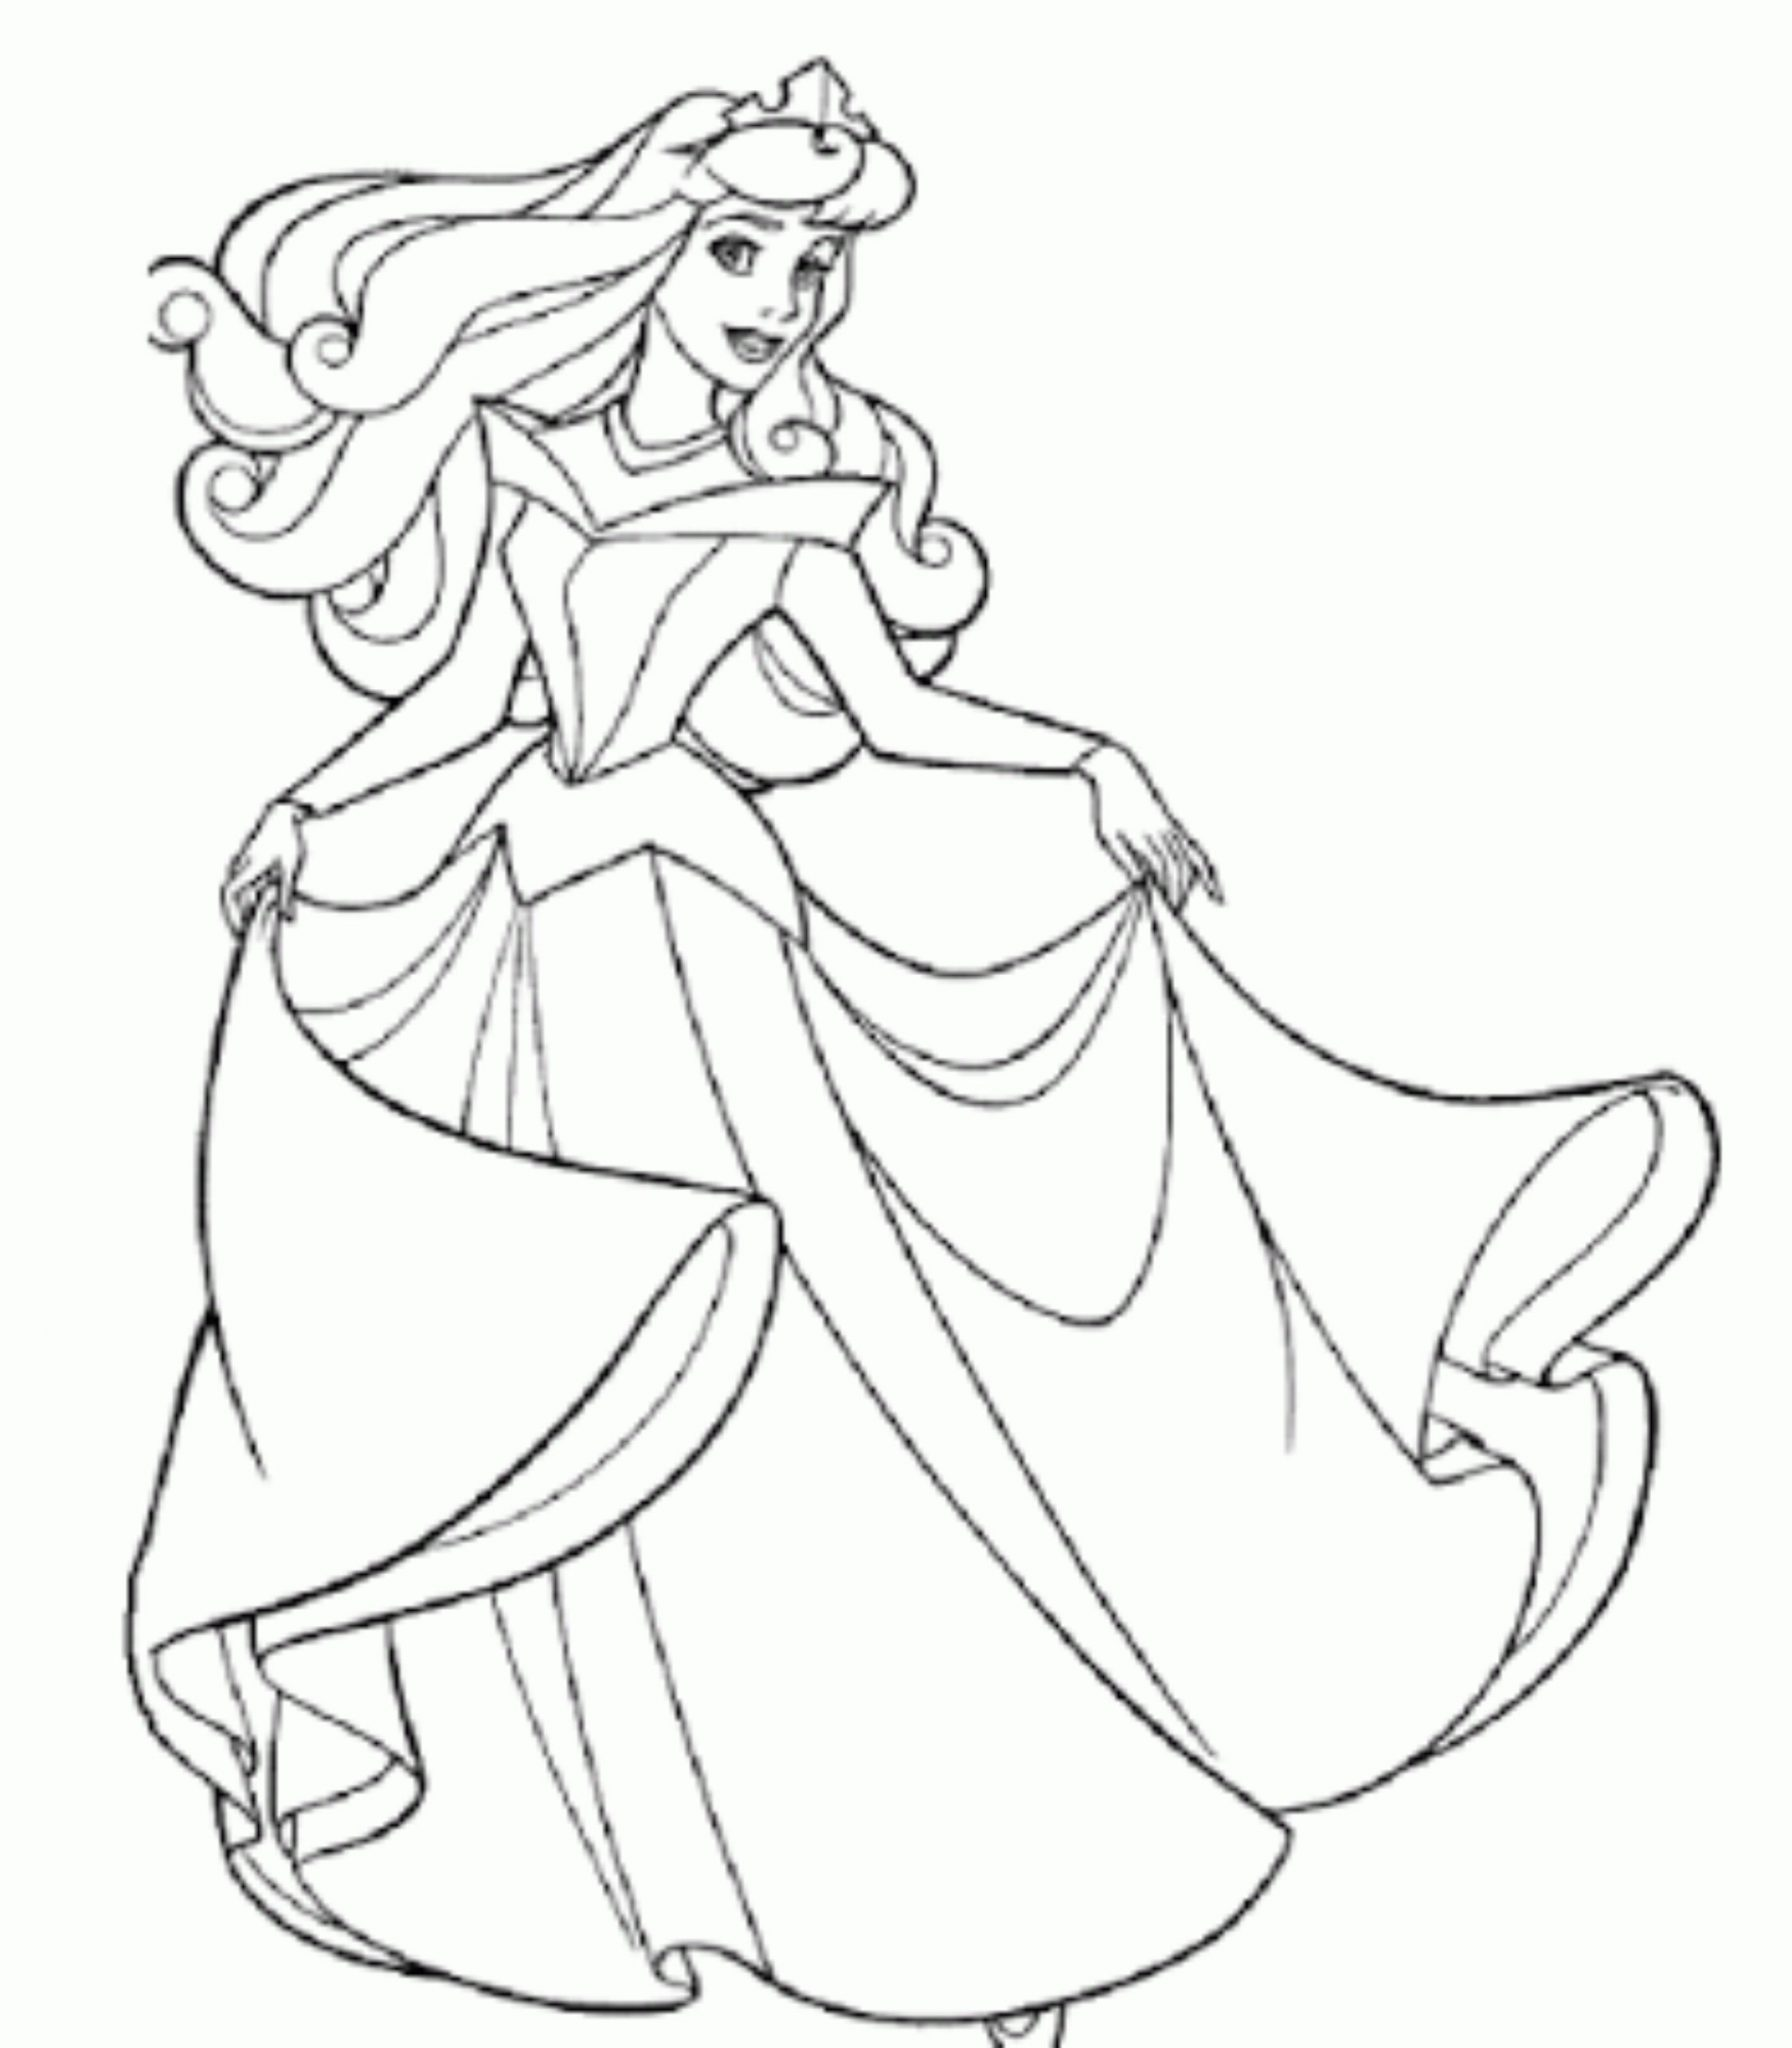 Print & Download - Princess Coloring Pages, Support The Child\'s Activity